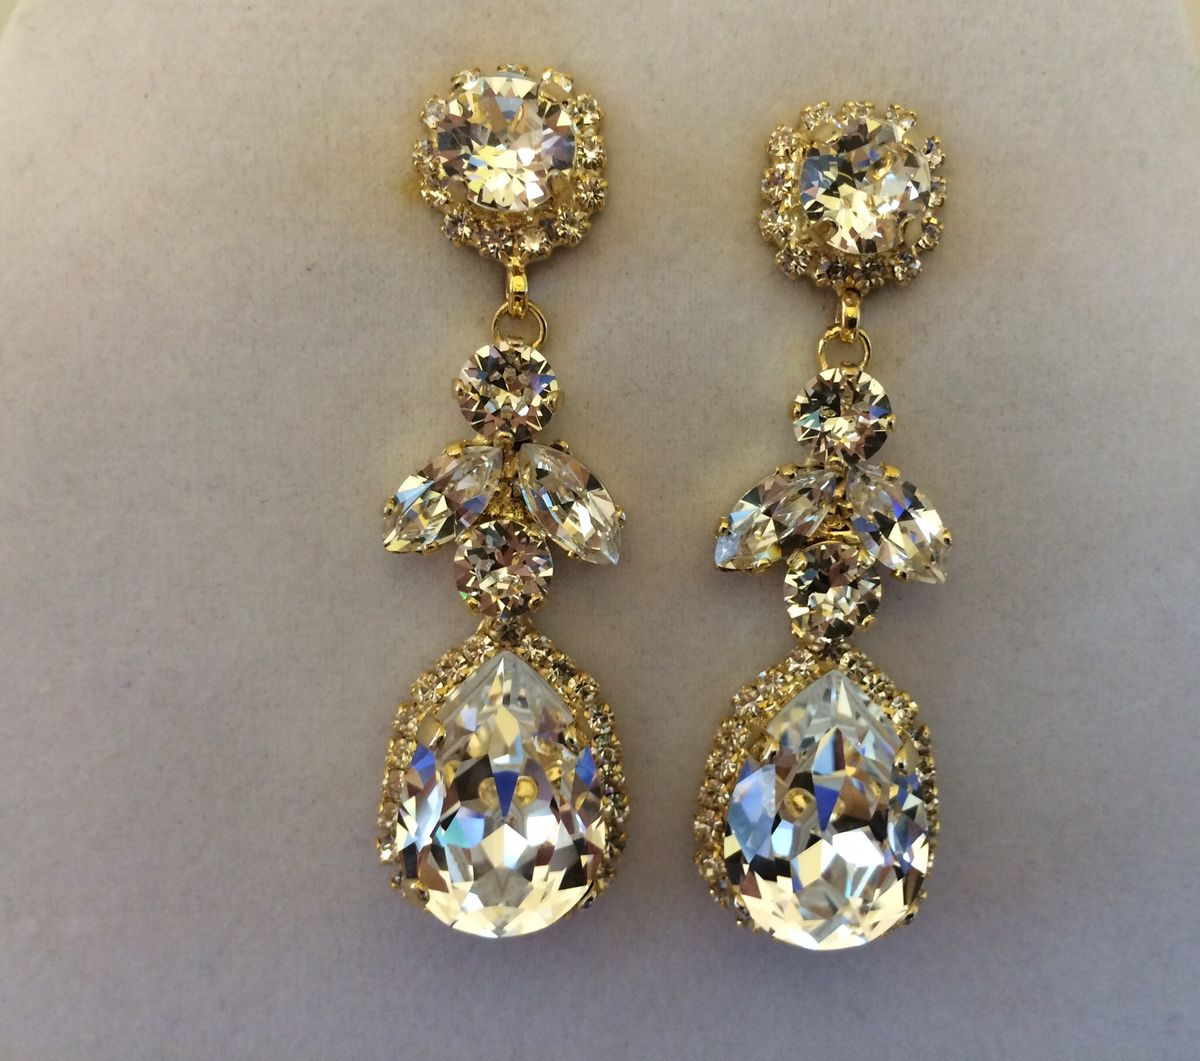 Swarovski Crystal Embellished Teardrop Dangle Earrings